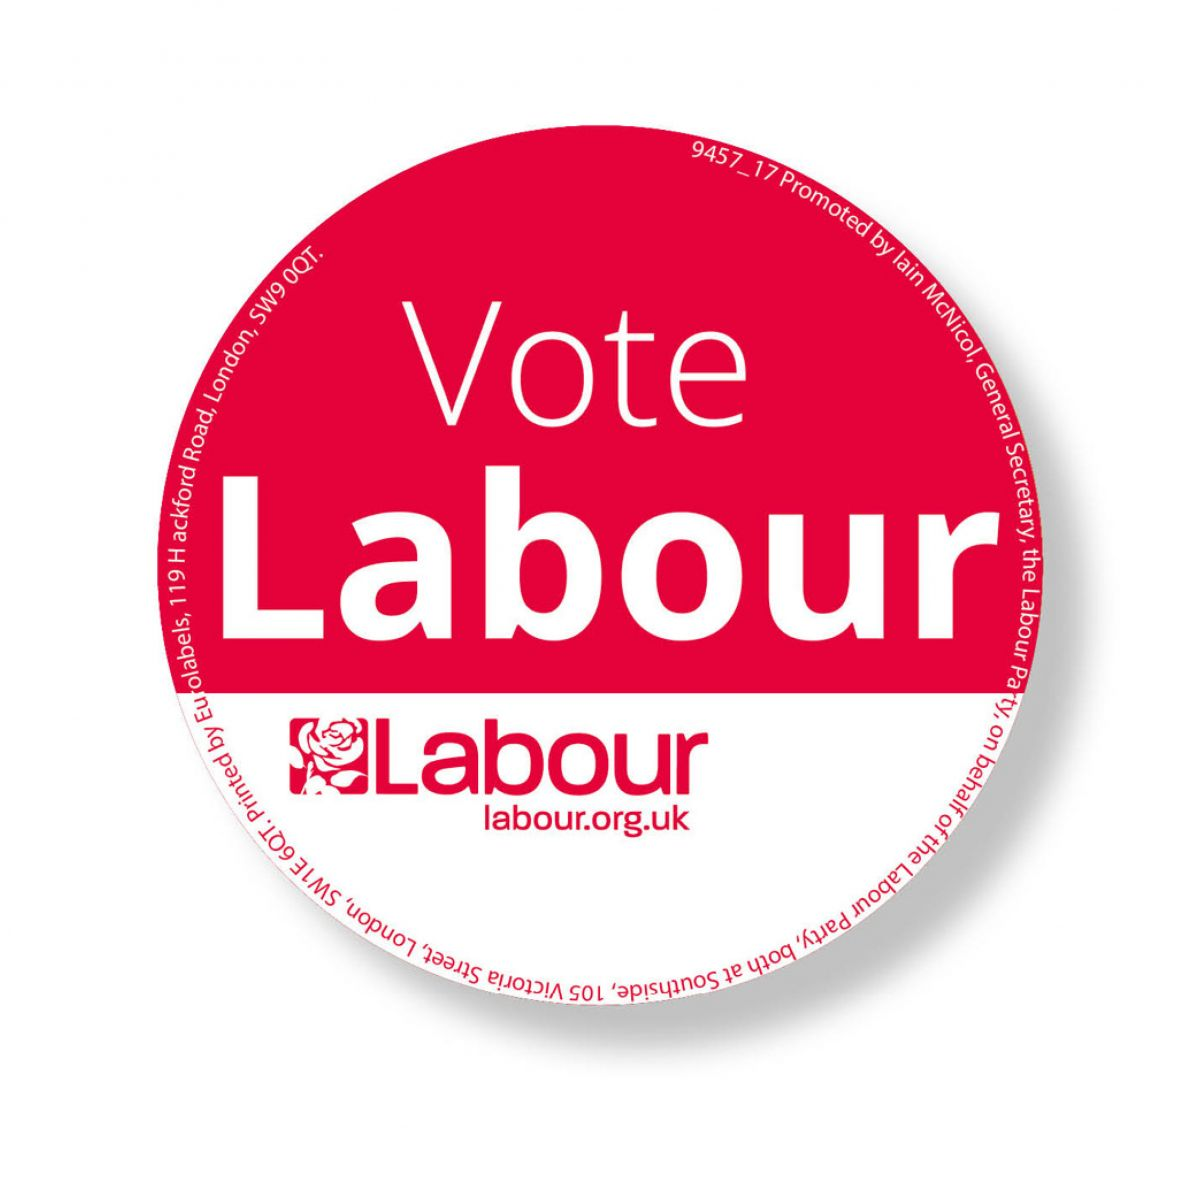 Vote Labour in Frome and Mendip on Thursday May 2nd 2019